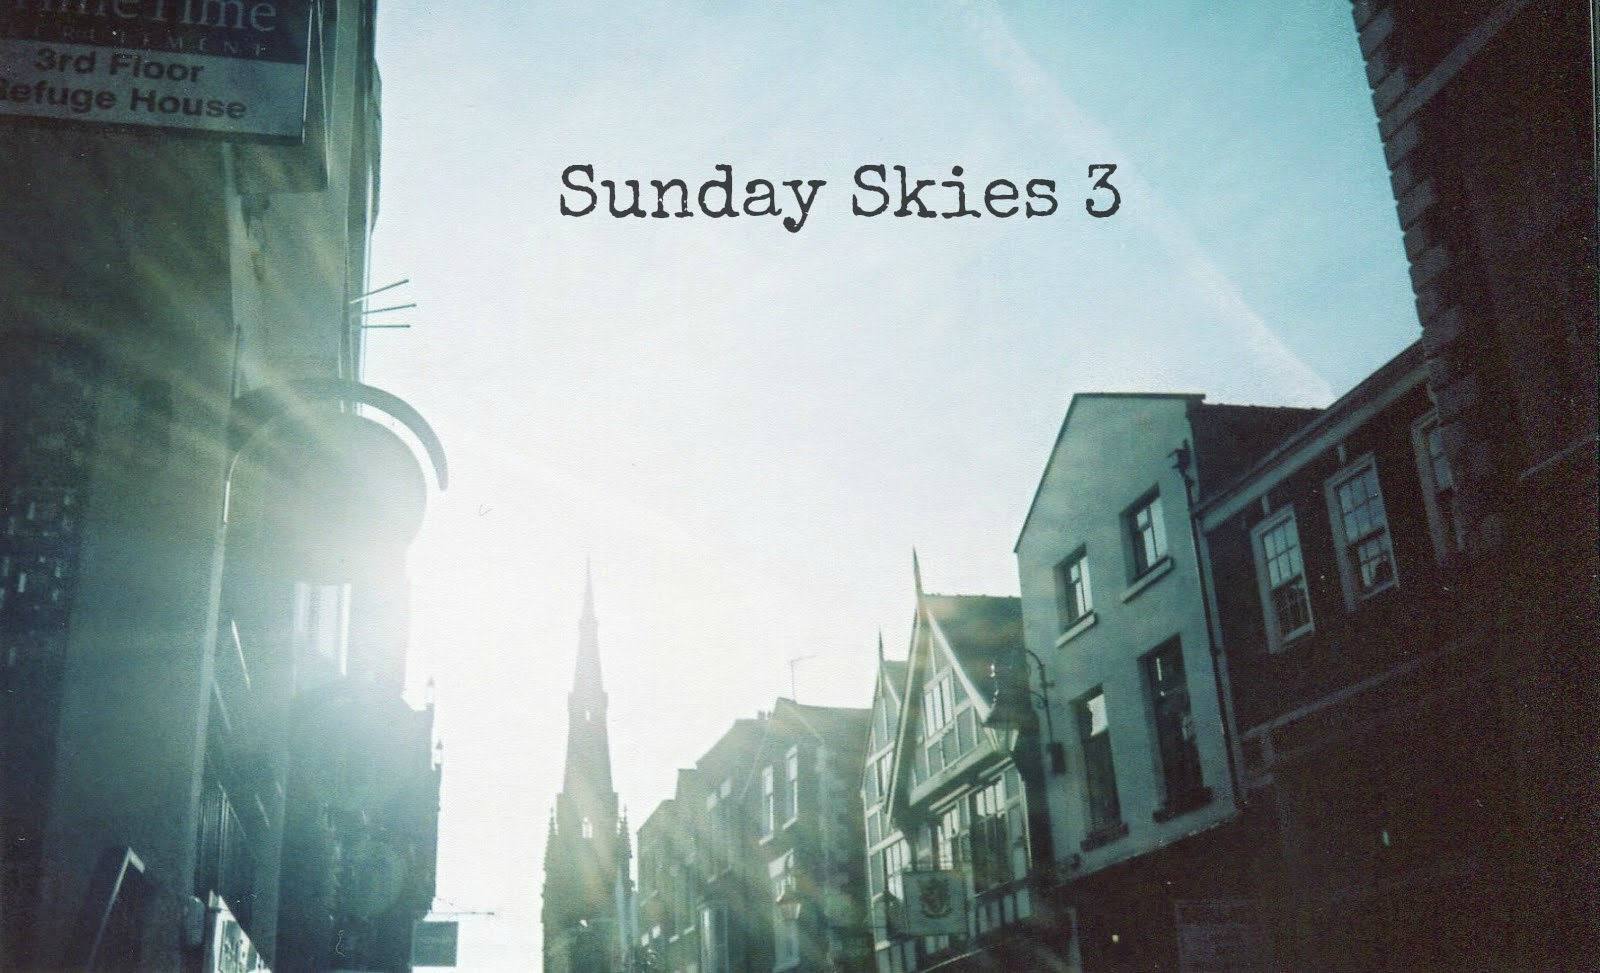 http://talesonfilm.blogspot.co.uk/2014/04/sunday-skies.html